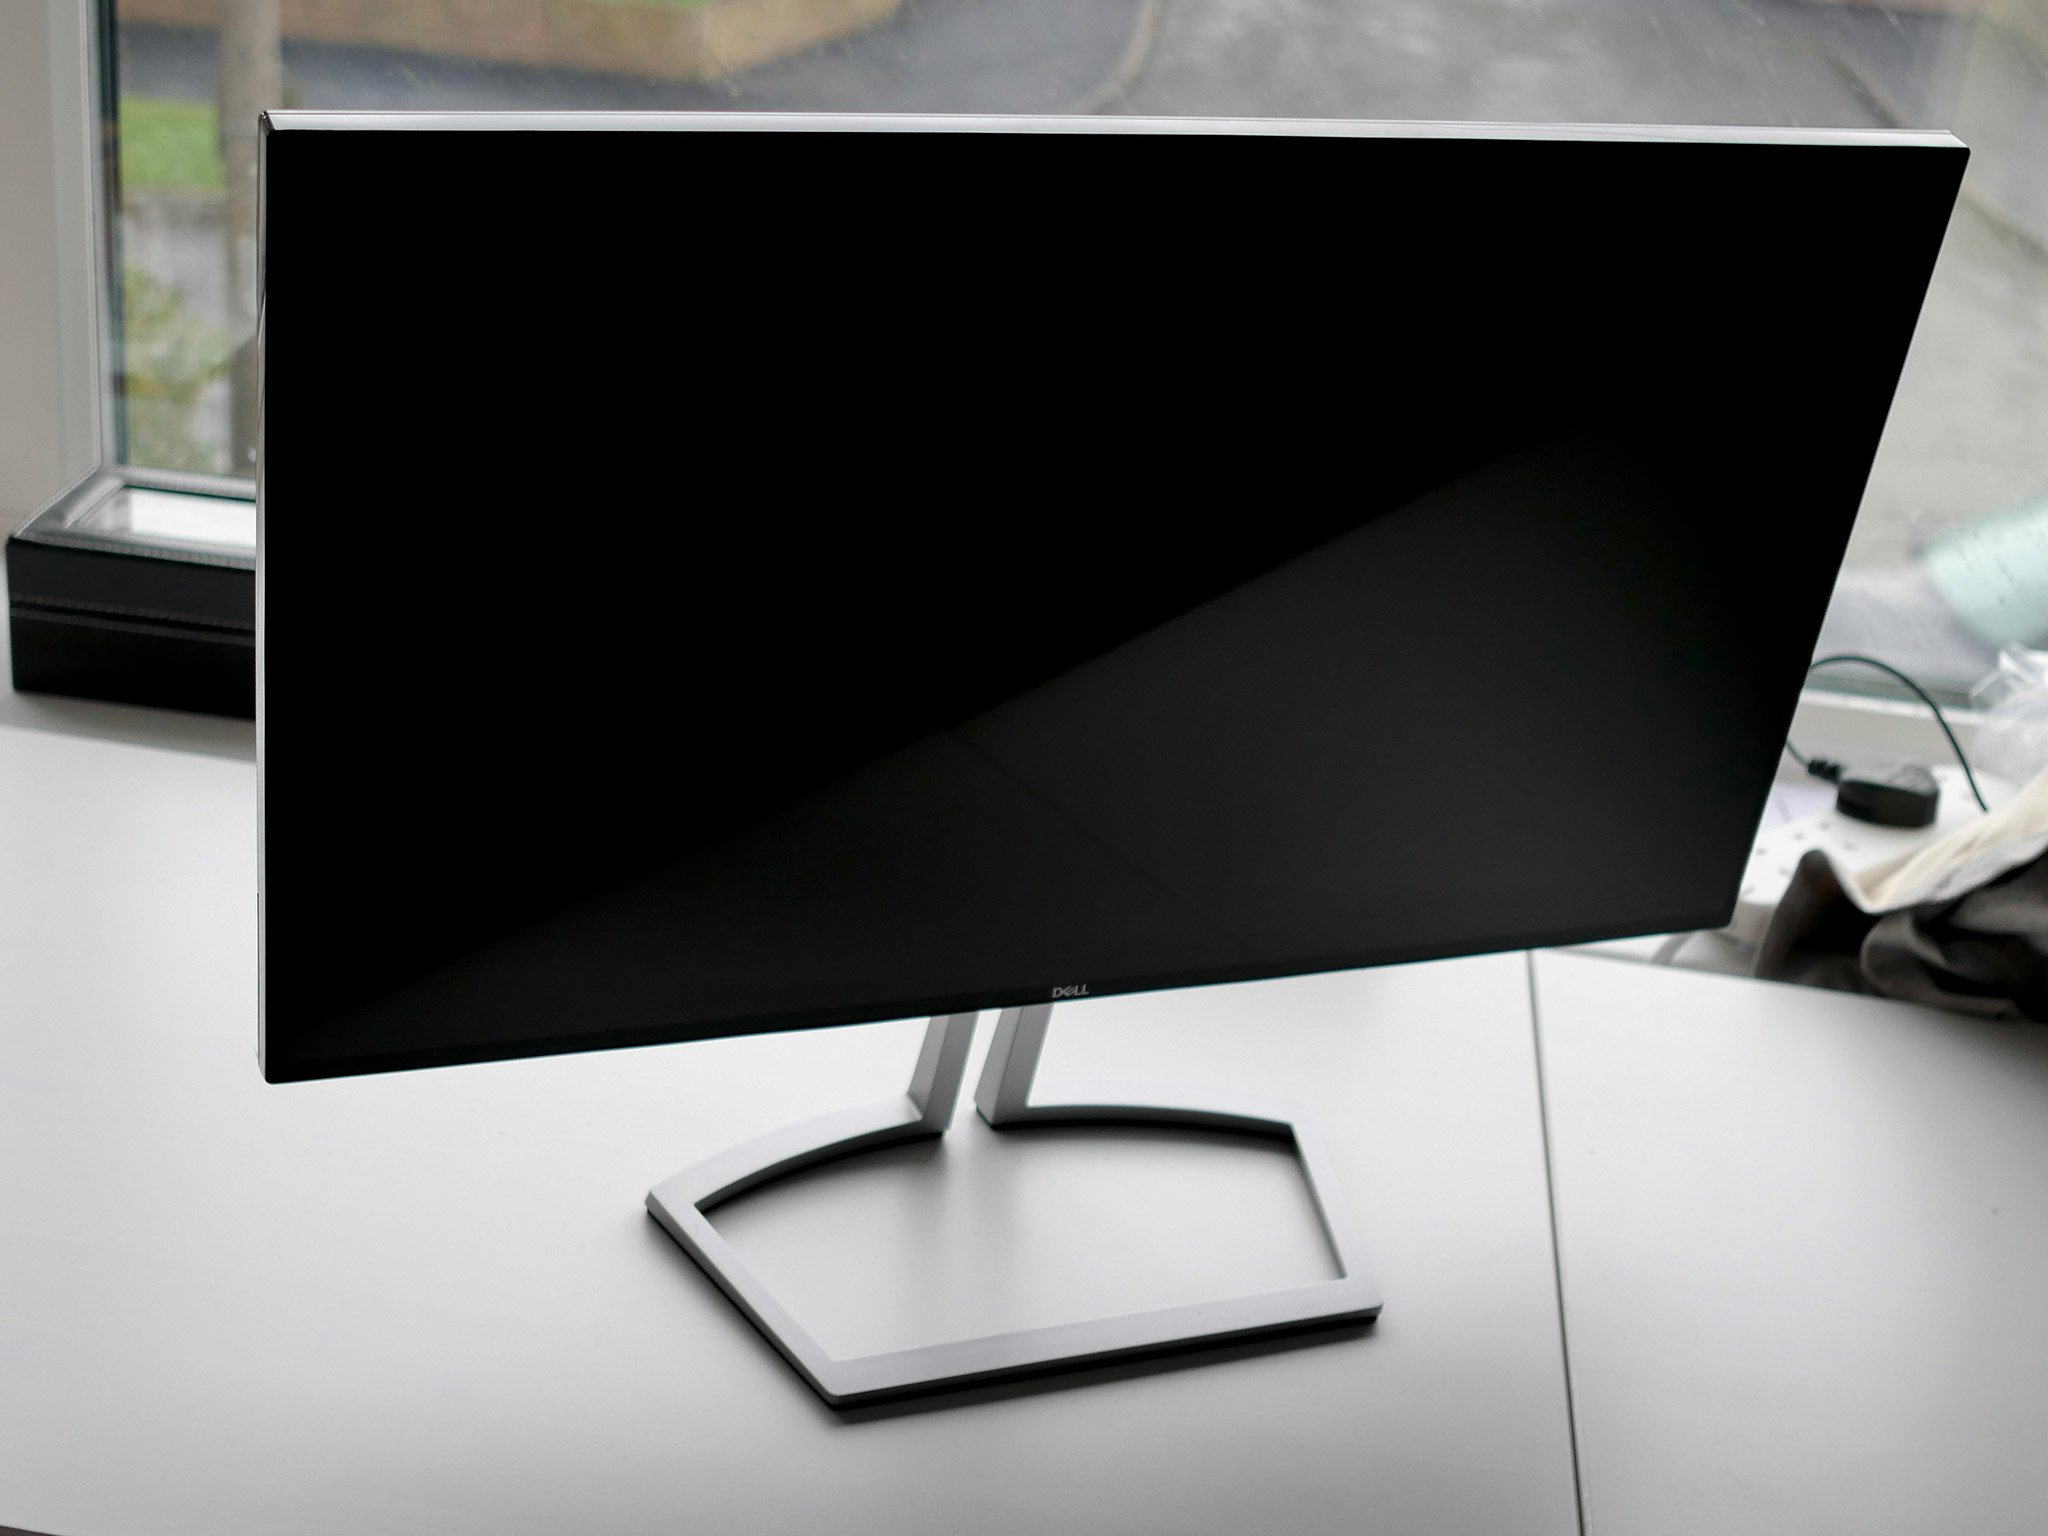 Dell S2418H Monitor Review A Great Display At A Reasonable Price But No Real HDR Windows